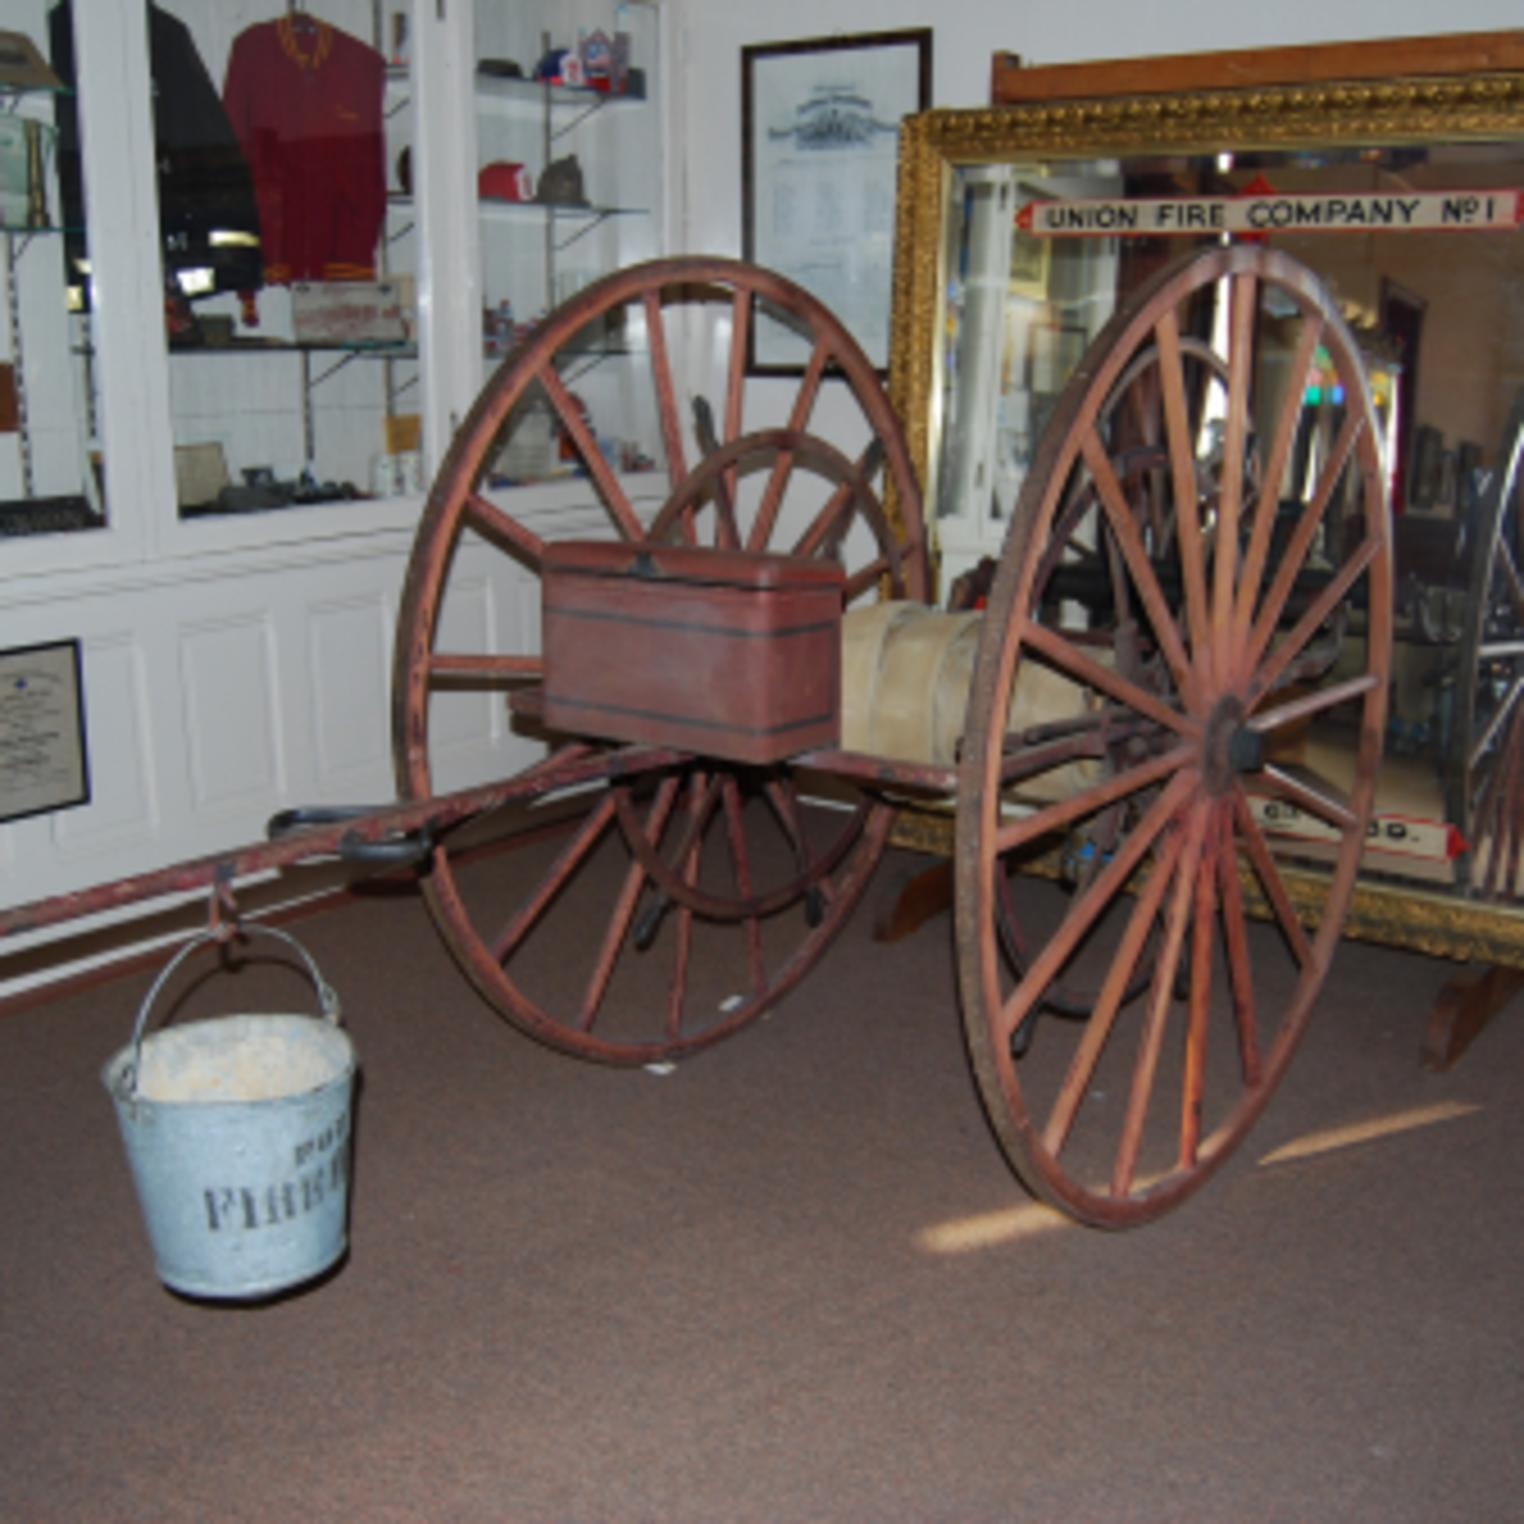 Exhibit at the Union Fire Company No. 1 Museum